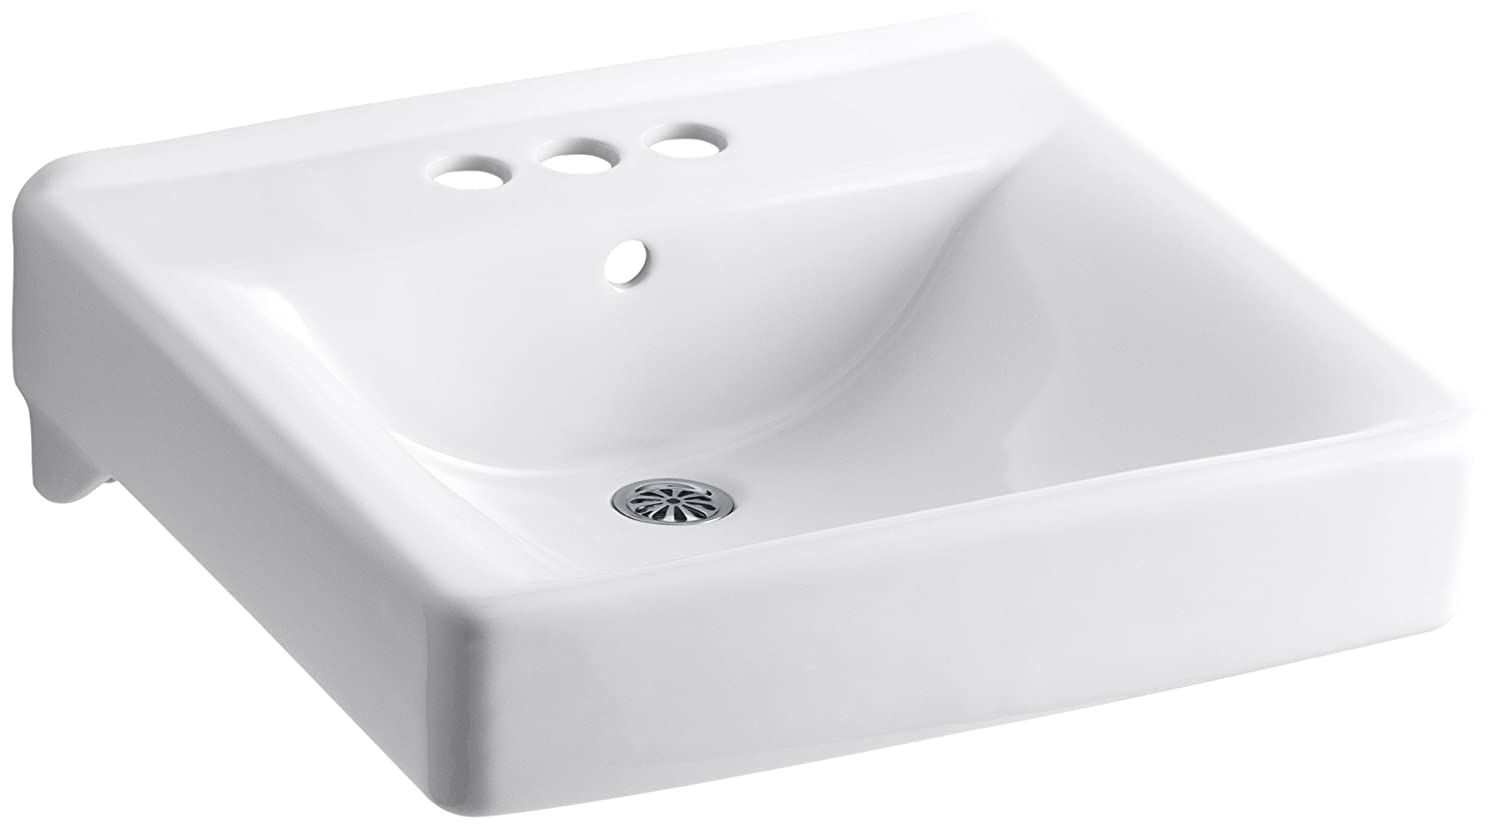 Kohler K 2054 0 Soho Wall Mount Bathroom Sink White Wall Mounted Sinks Amazon Com